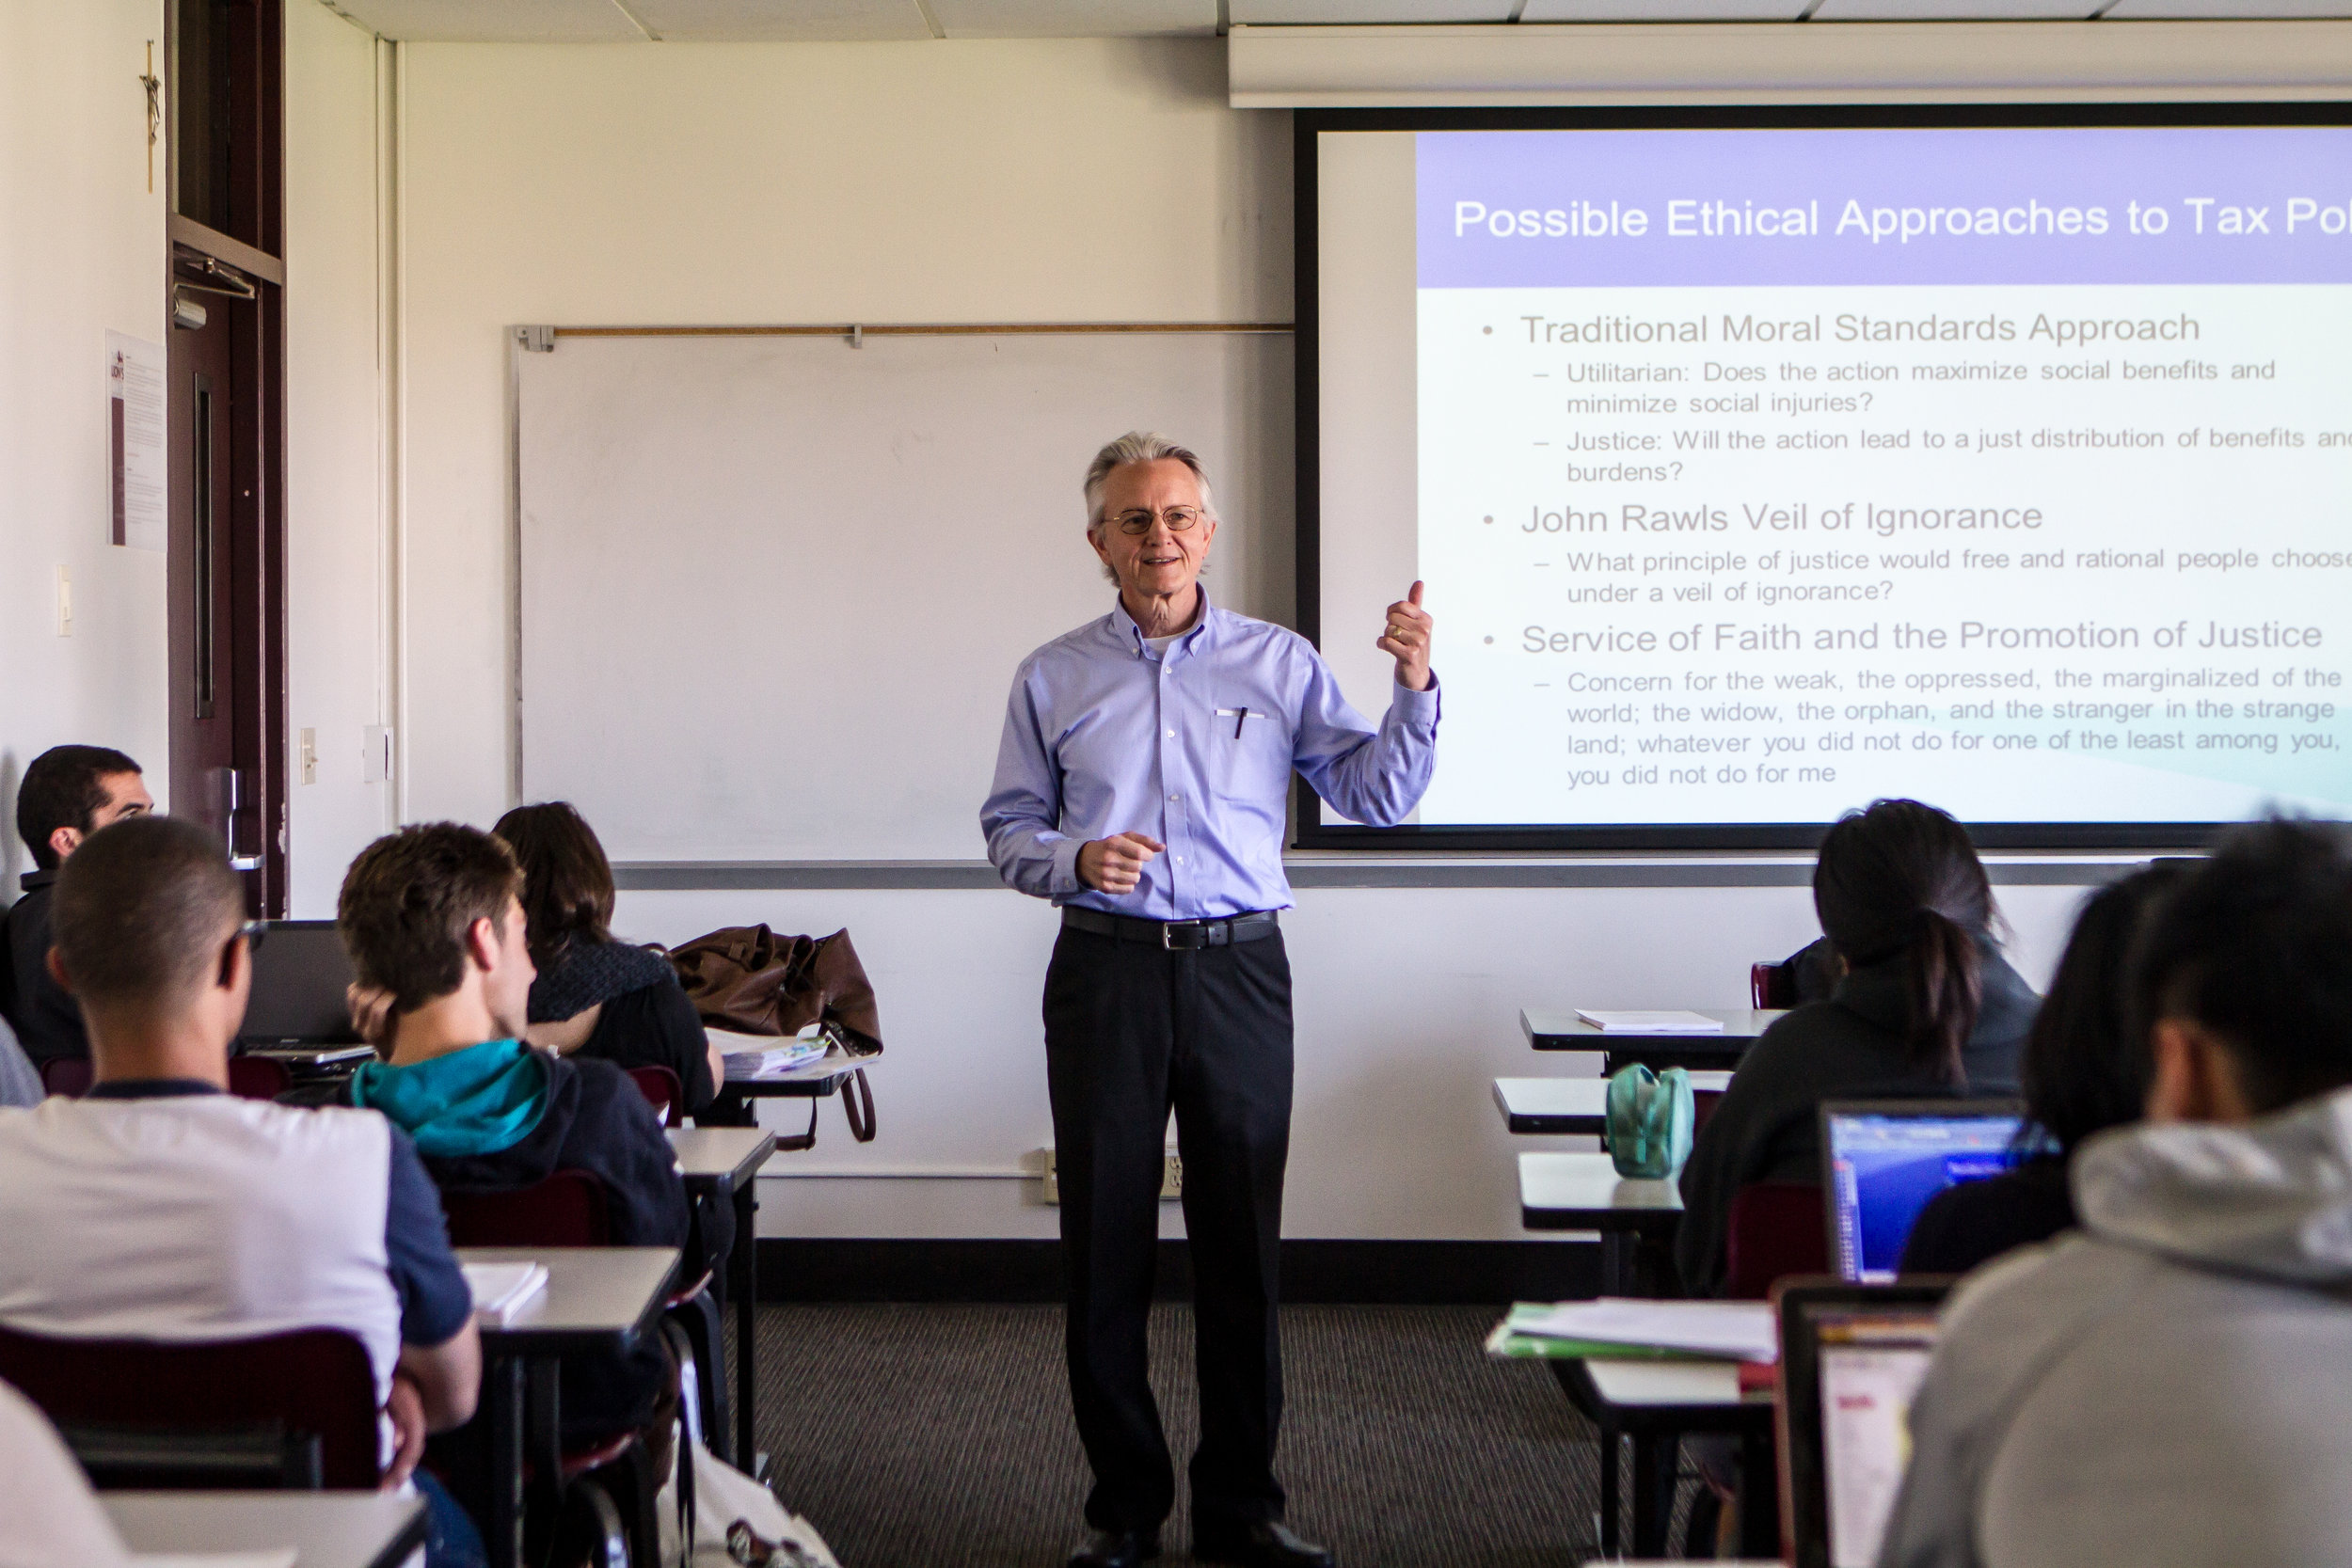 Larry Kalbers, R. Chad Dreier Chair in Accounting Ethics, teaches an accounting ethics course at Loyola Marymount (photo by Loyola Marymount University)